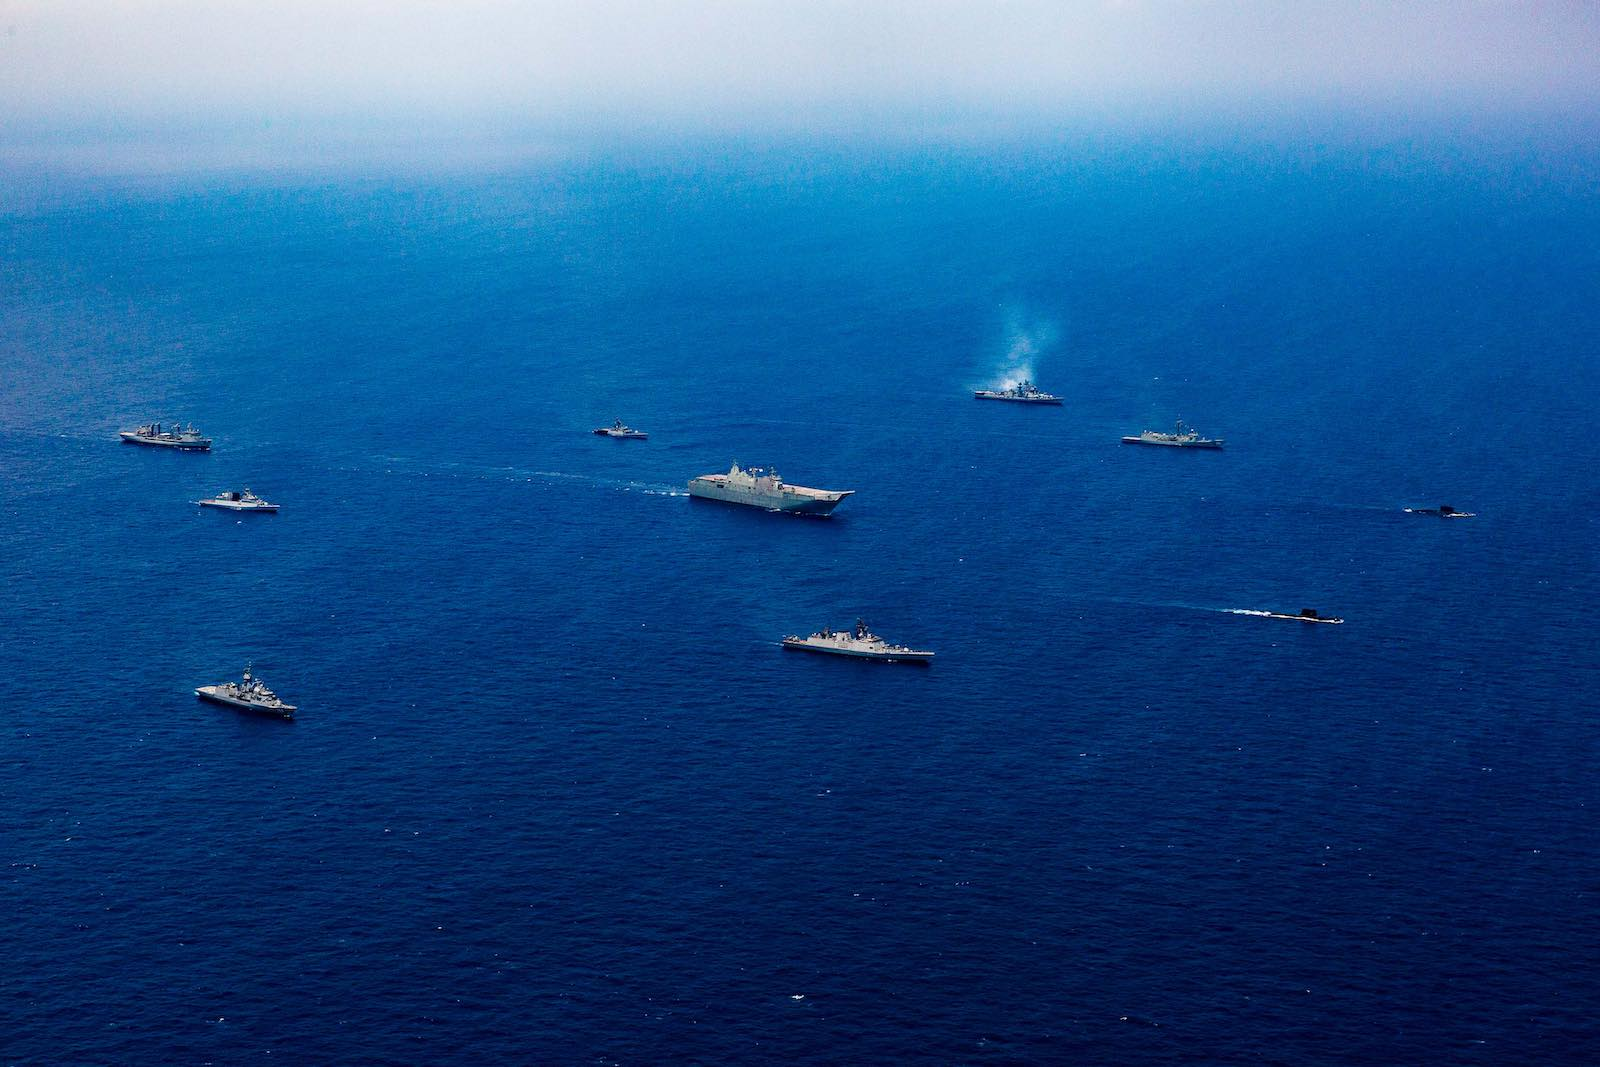 A task group of naval ships from Australia and India in formation in the Bay of Bengal during the sea phase of AUSINDEX 2019 (Department of Defence)